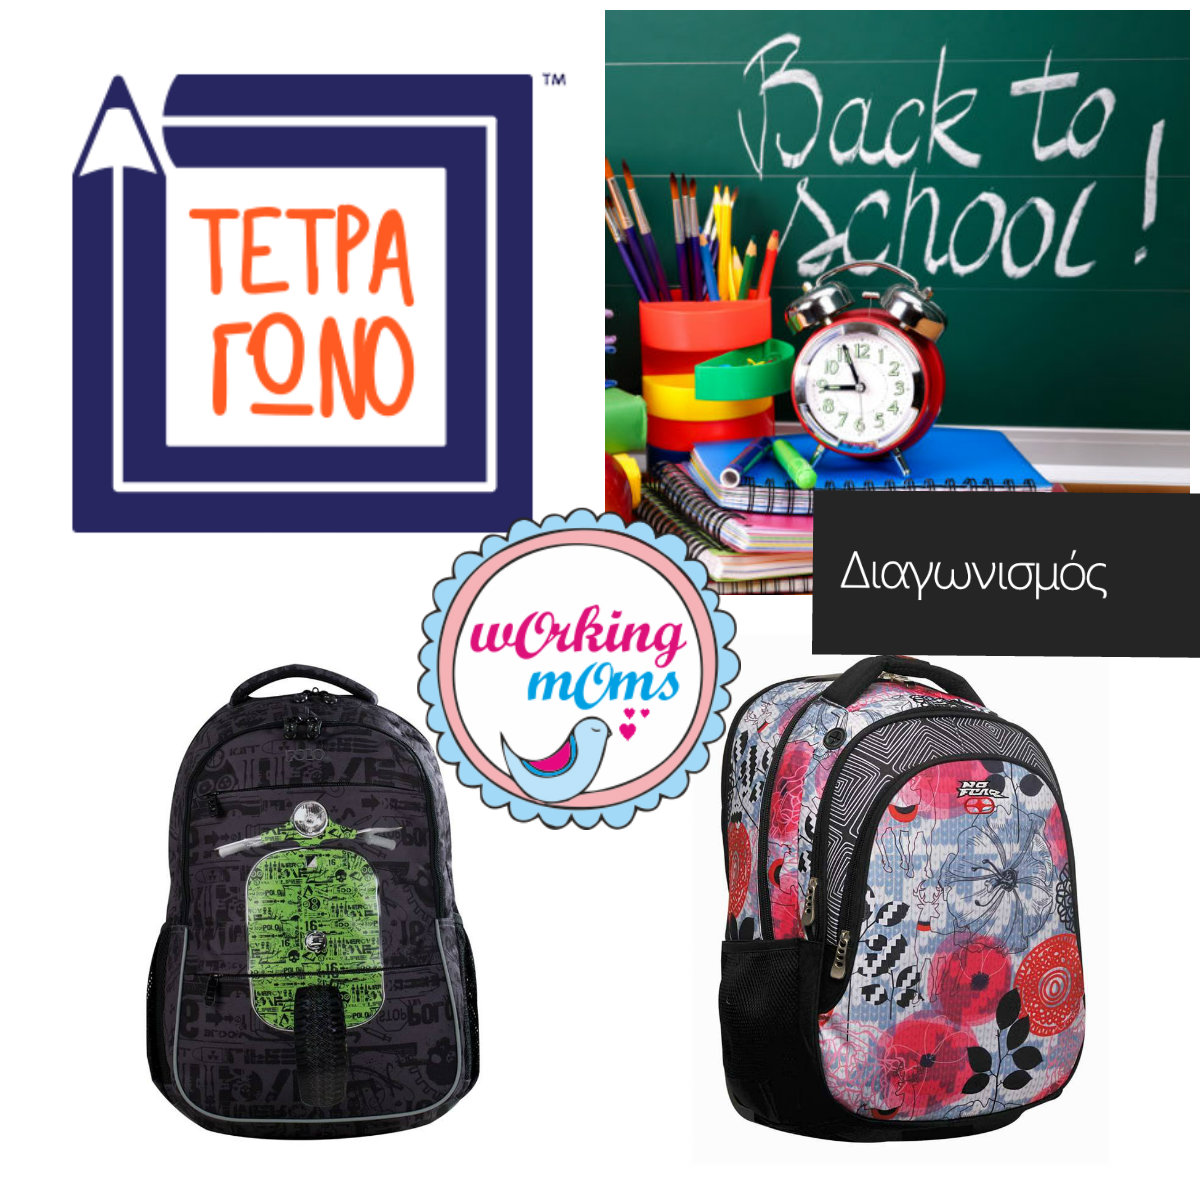 8552e2d8755 To blog Working Moms σε συνεργασία με το βιβλιοπωλείο Tetragono Bookstores  σας ετοίμασαν έναν εκπληκτικό back to school διαγωνισμό και προσφέρουν σε 2  ...